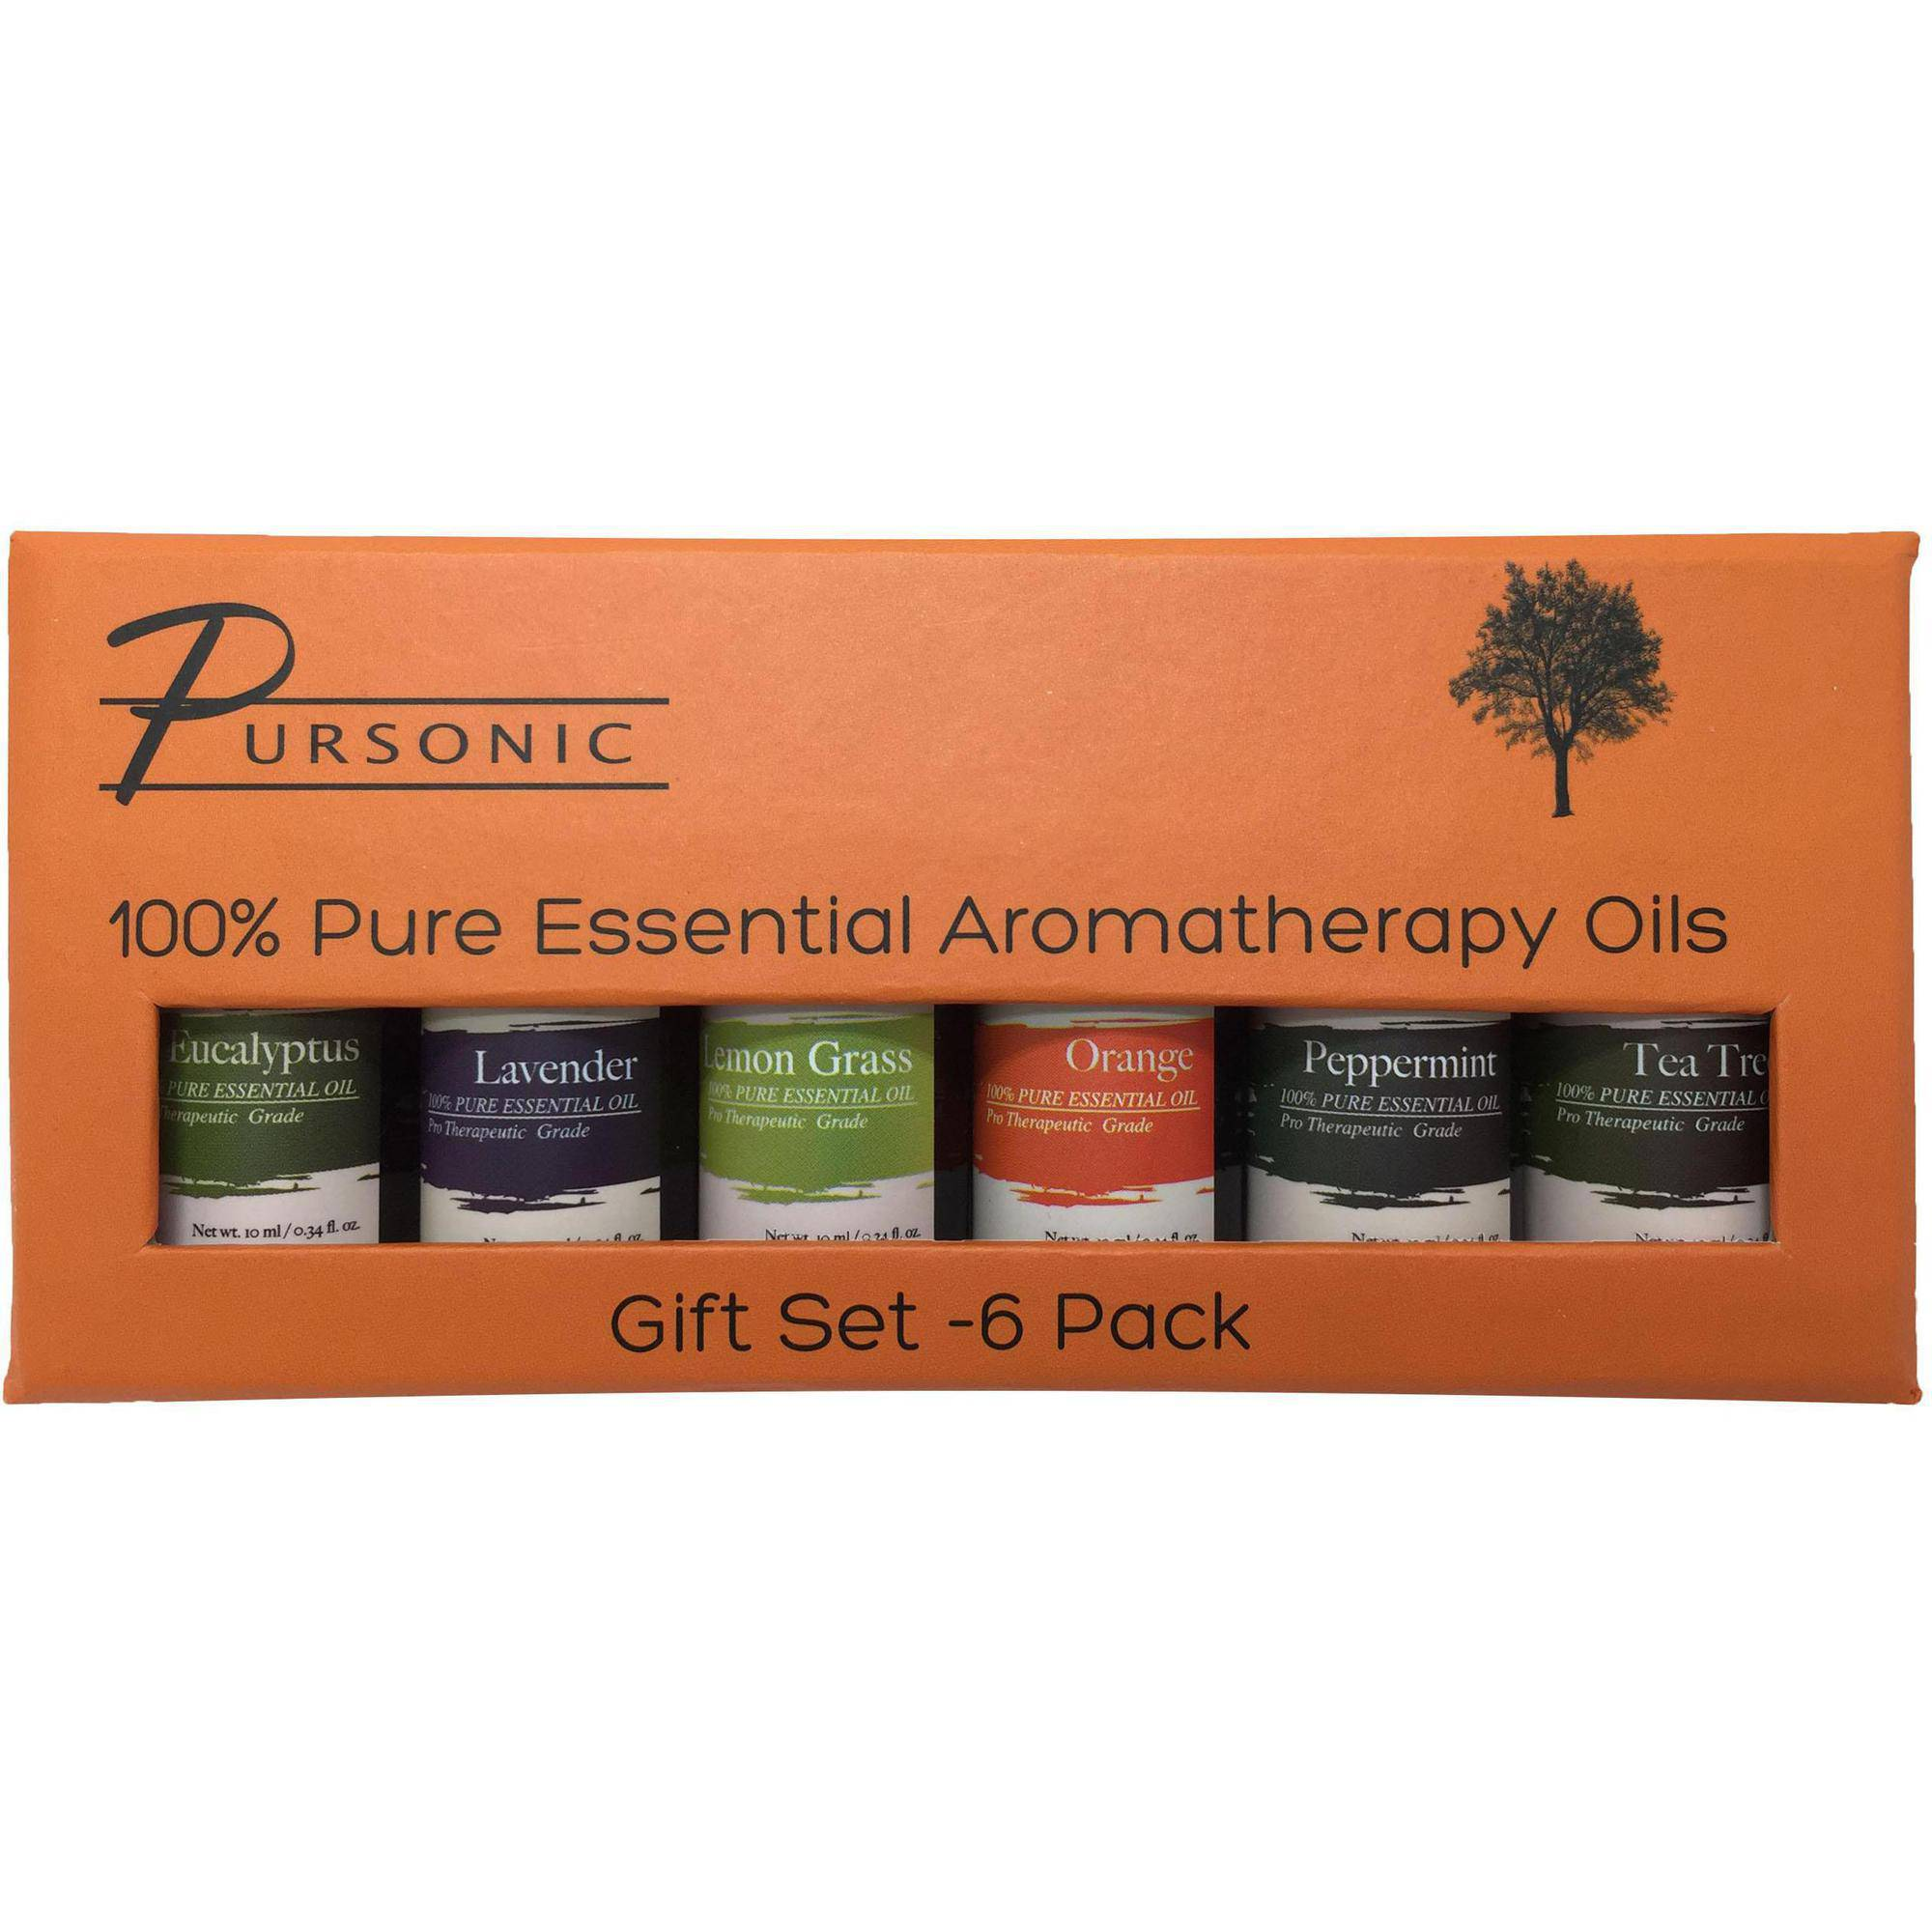 Pursonic Pure Essential Aroma Oils, 6-Pack